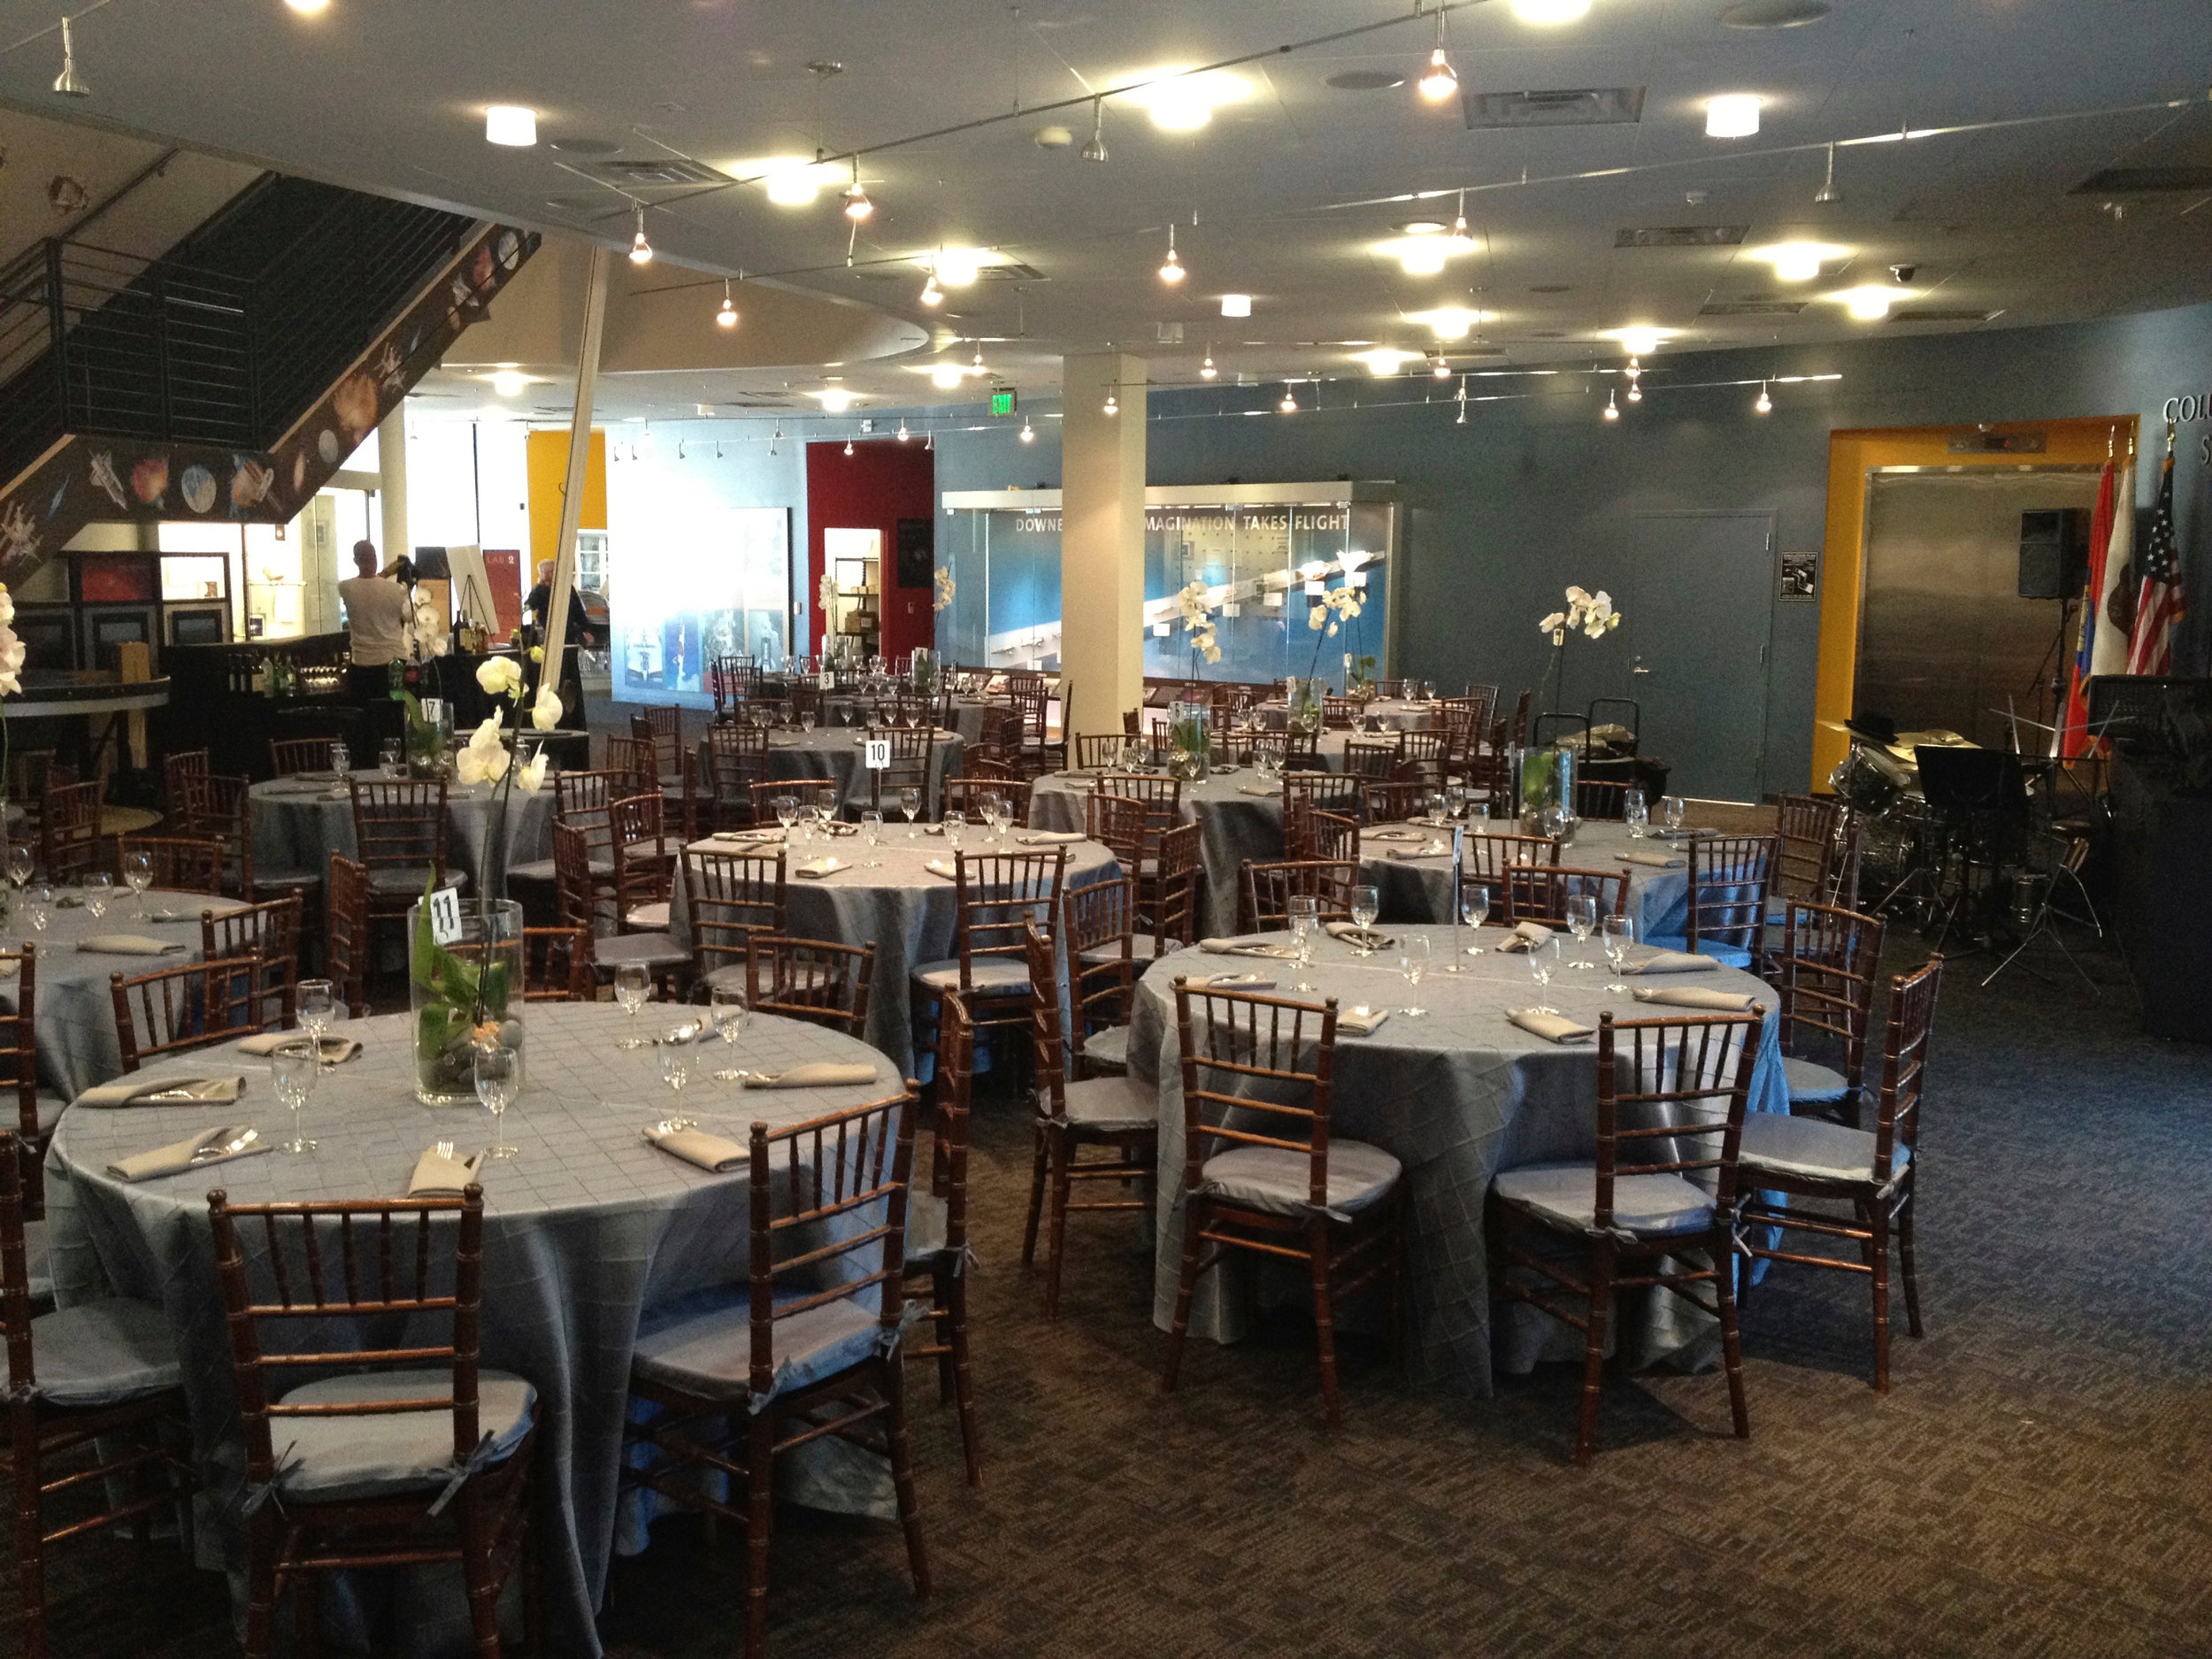 1st Floor - banquet seating